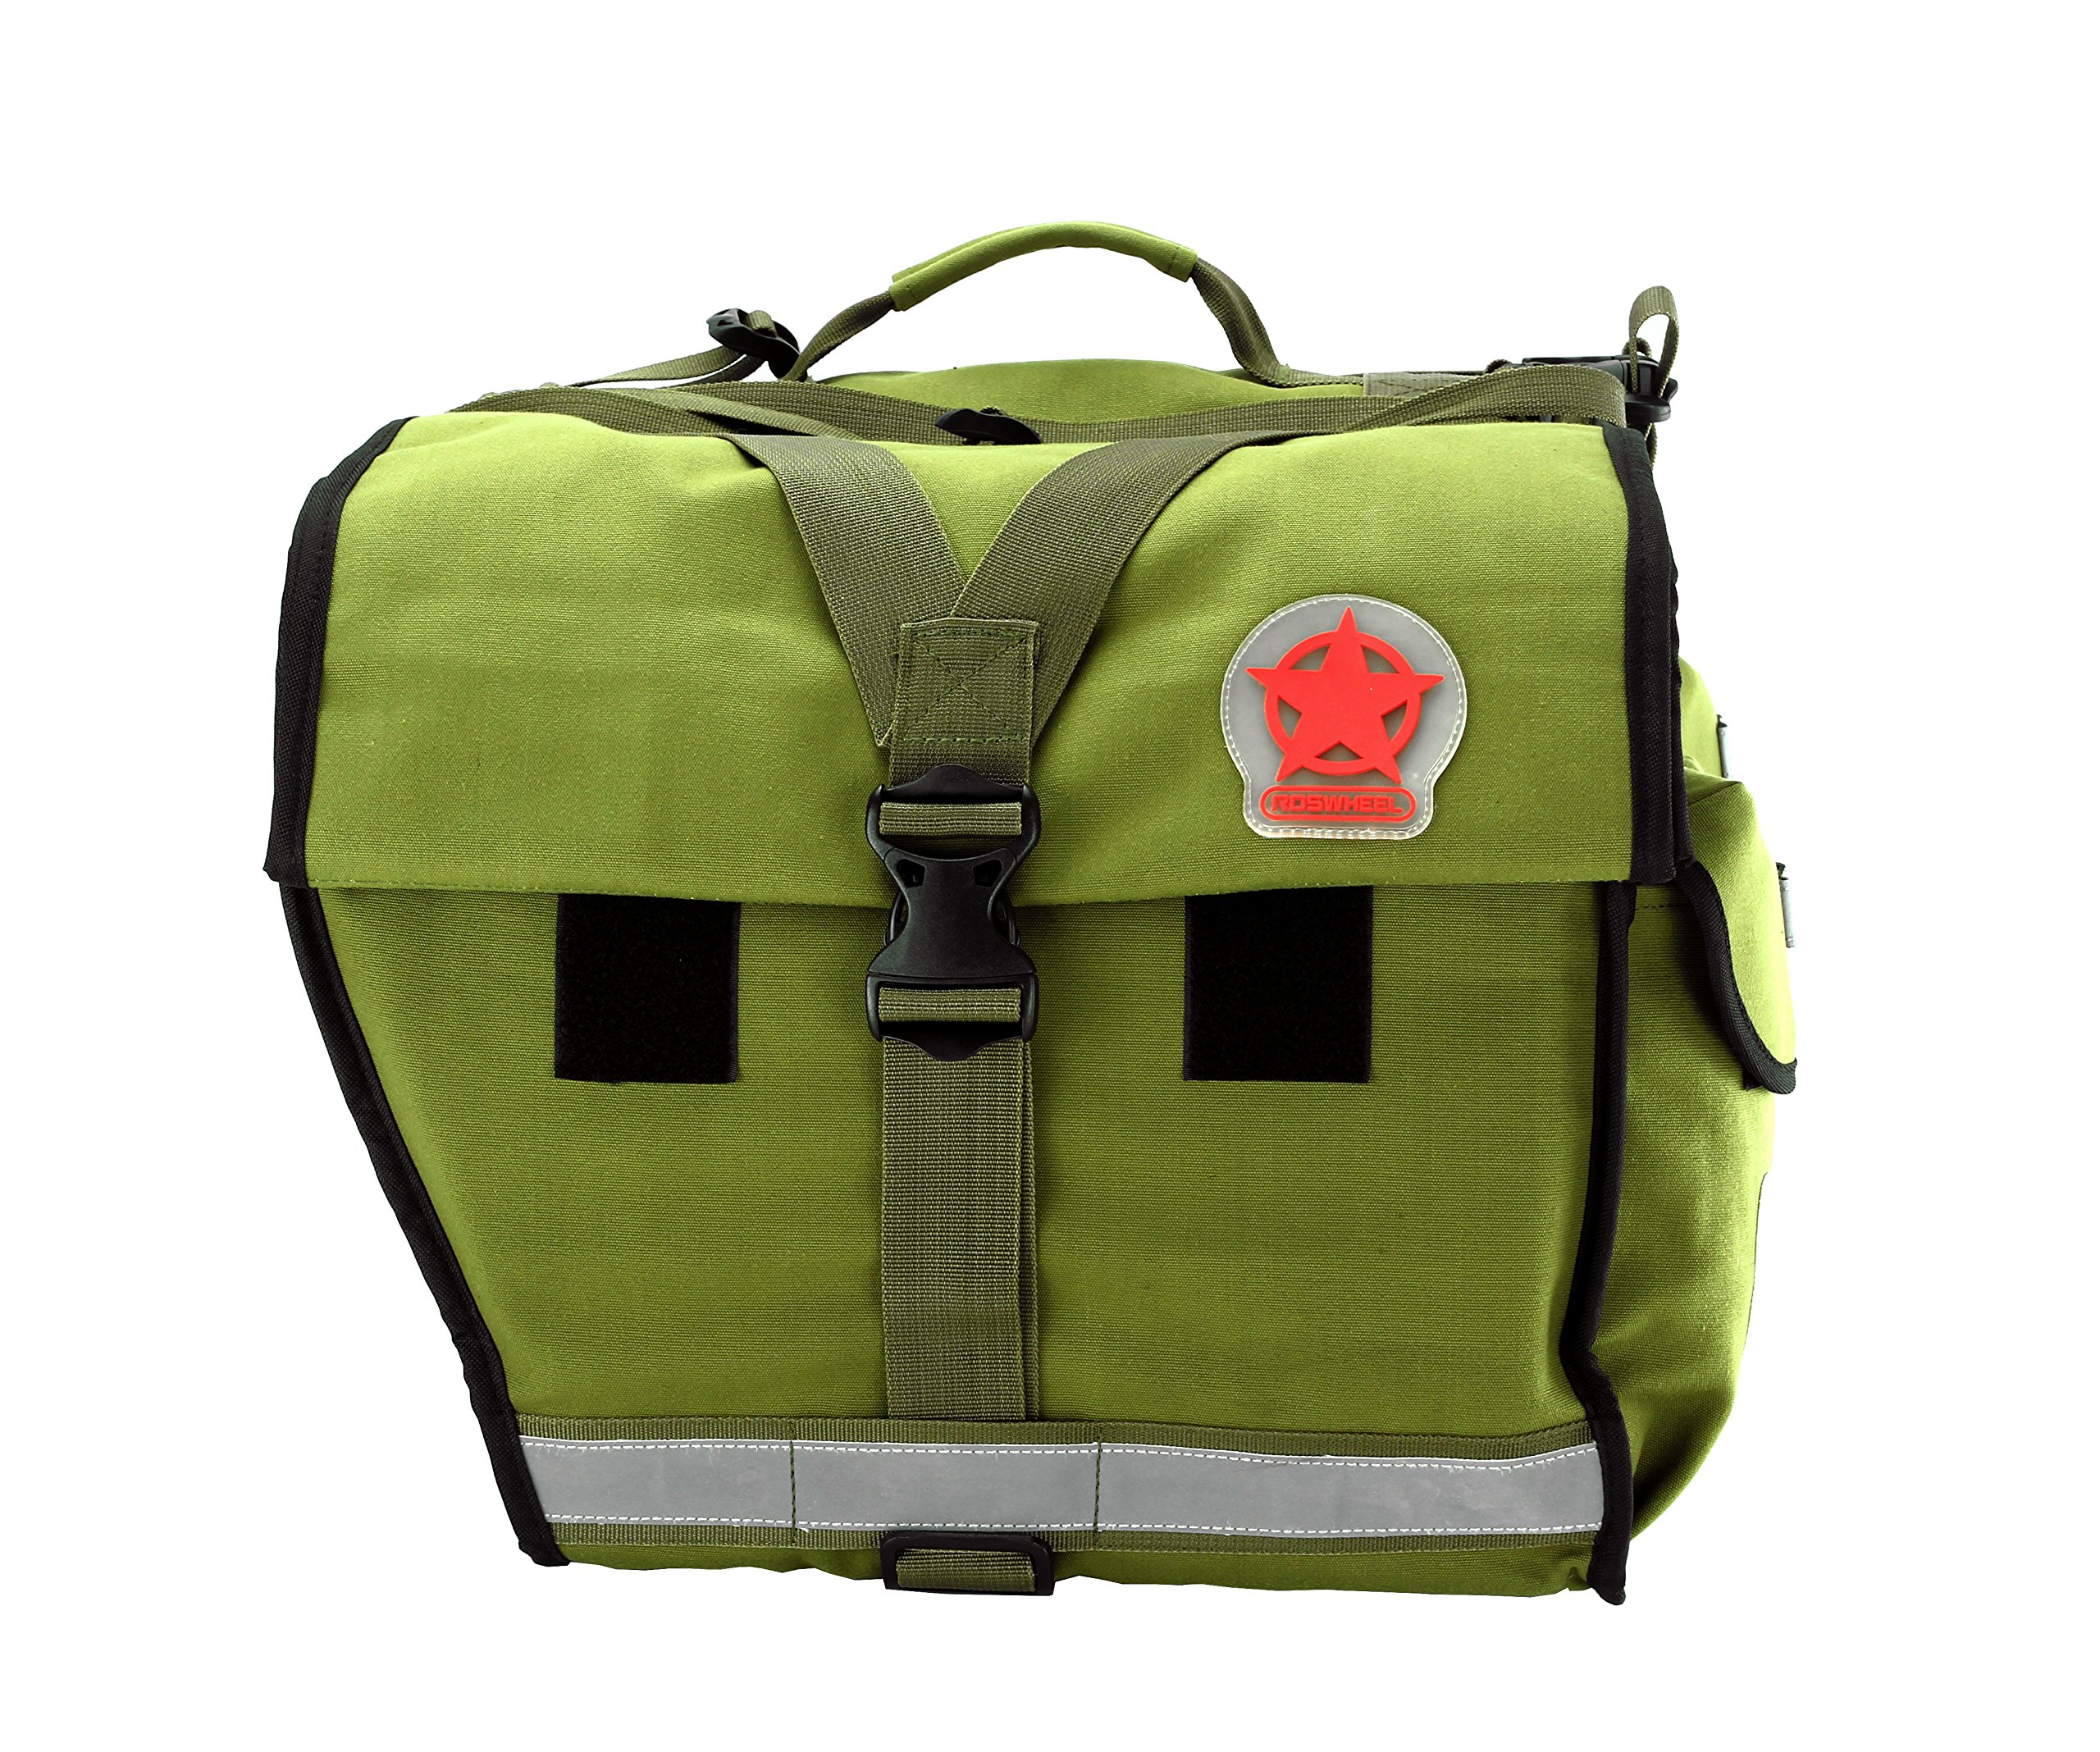 Roswheel 14686 Expedition Series Bike Rear Rack Bag Bicycle Double Panniers Cargo Trunk Bag by Roswheel (Image #11)